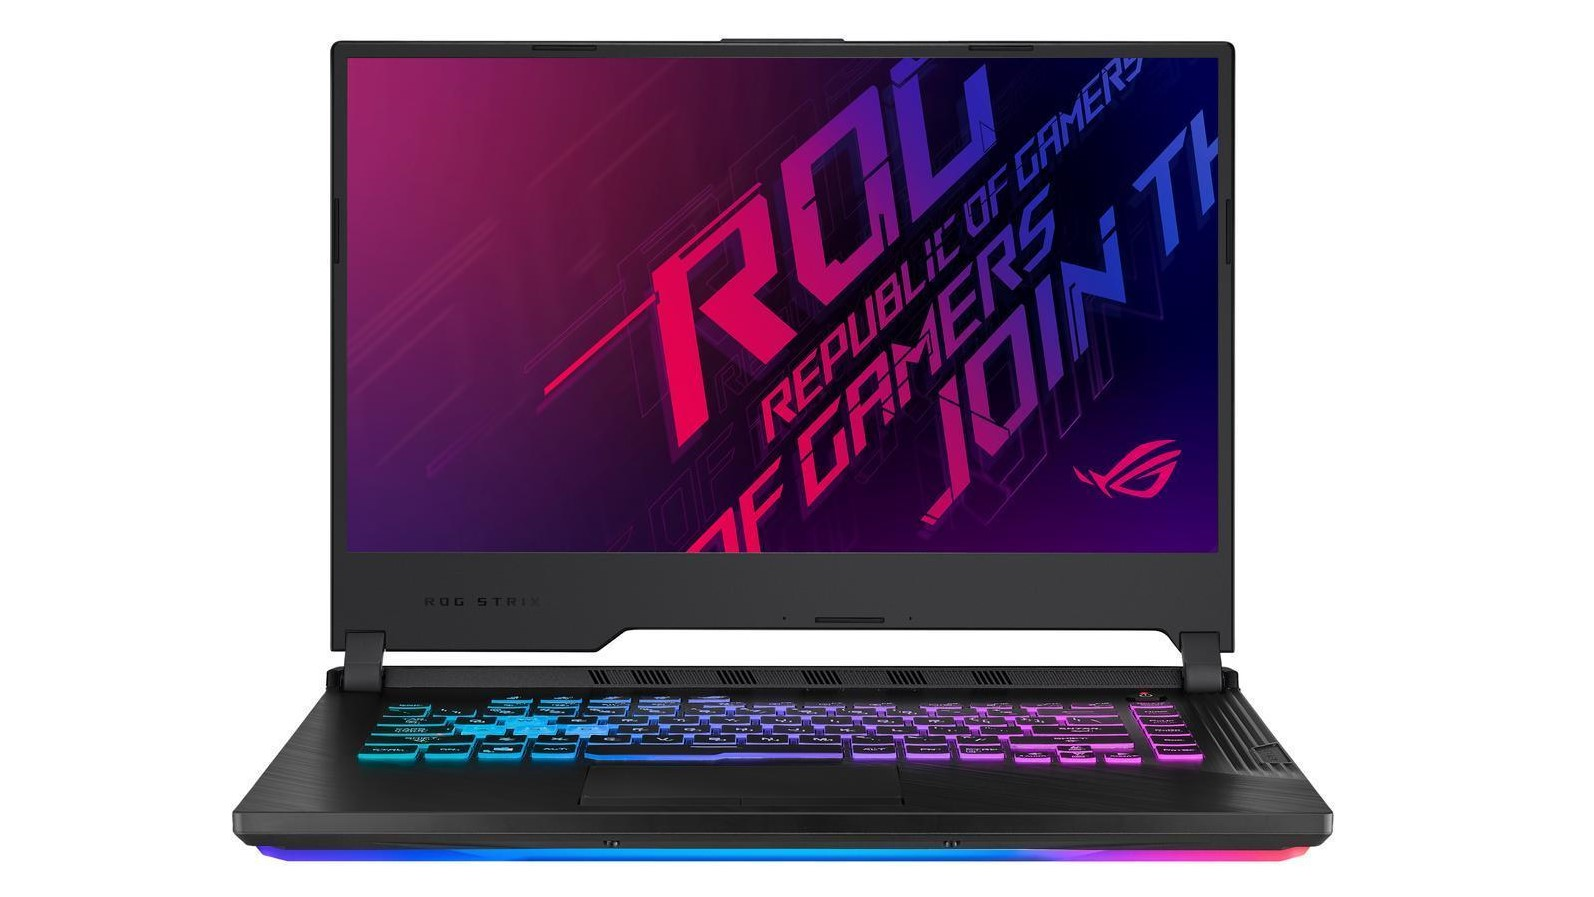 Save 400 On An Rtx 2070 Gaming Laptop In Newegg S 4th July Sale Rock Paper Shotgun